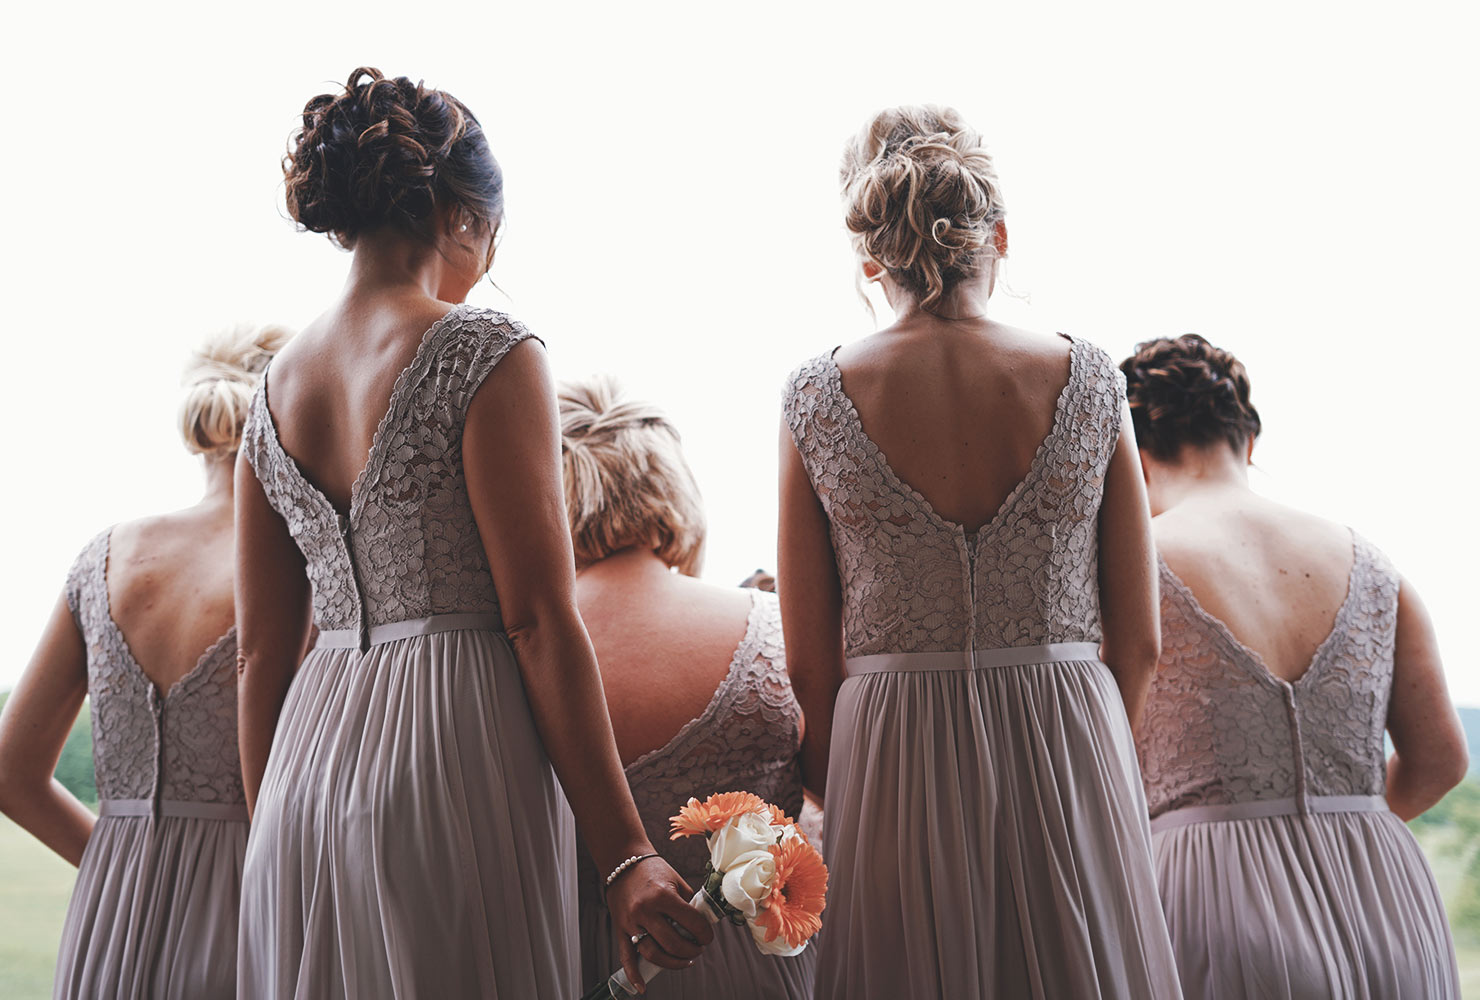 What Not To Wear To A Wedding: 25 Items To Avoid